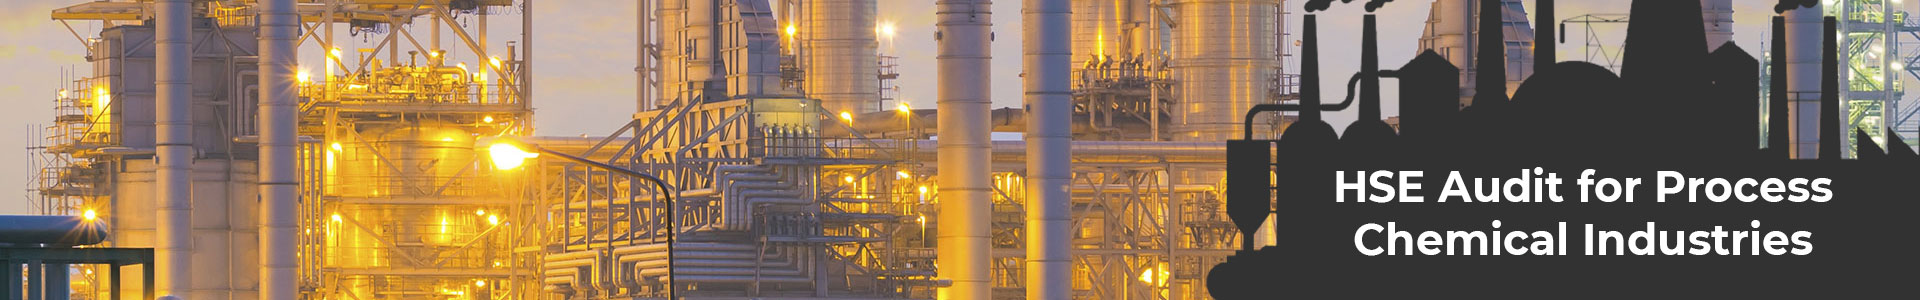 hse-audit-for-process-chemical-industries